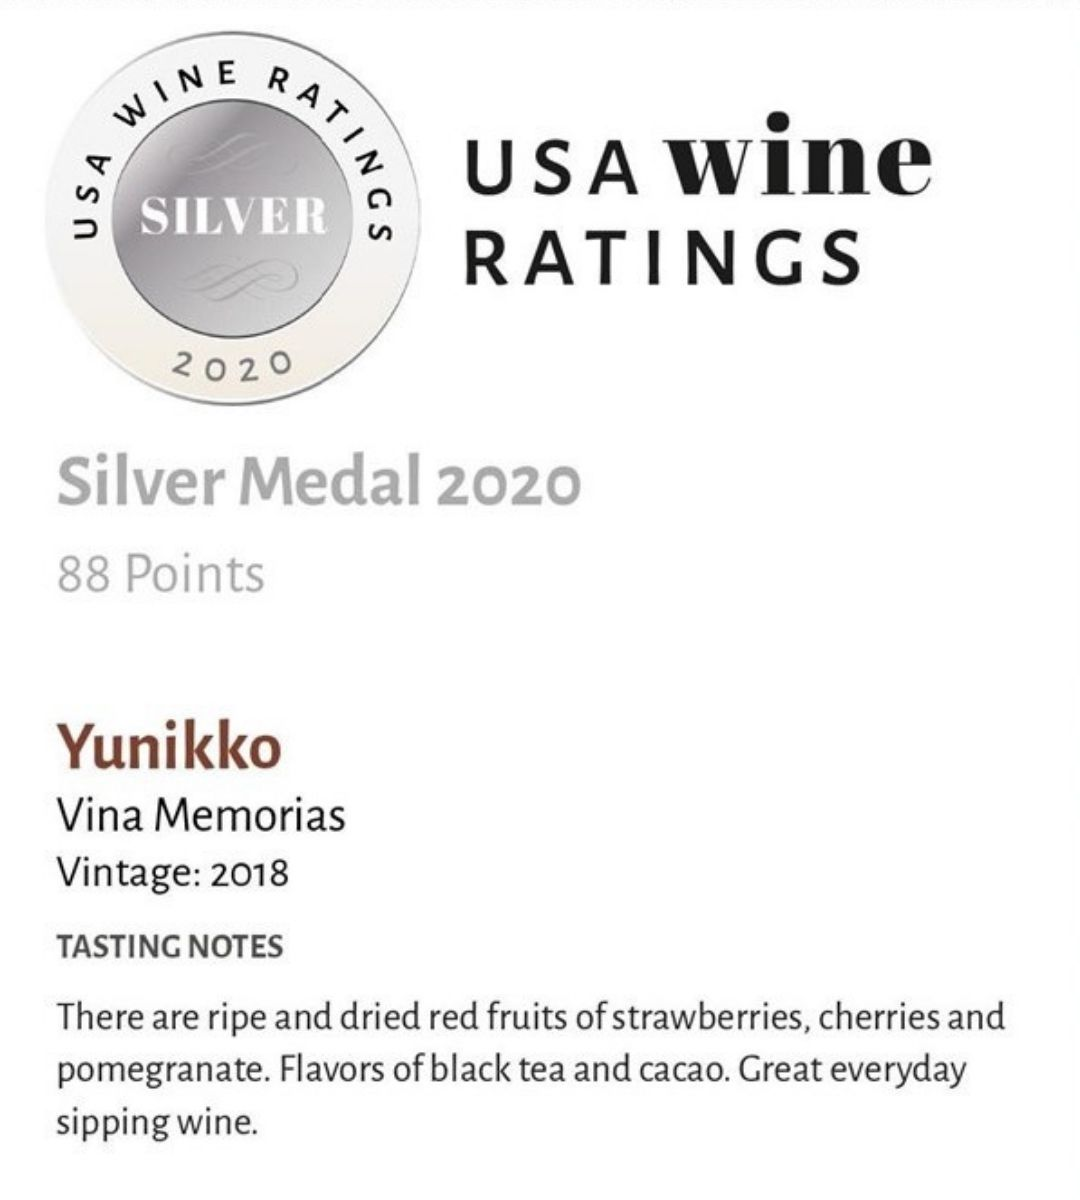 Yunikko Silver Medal USA Wine Ratings